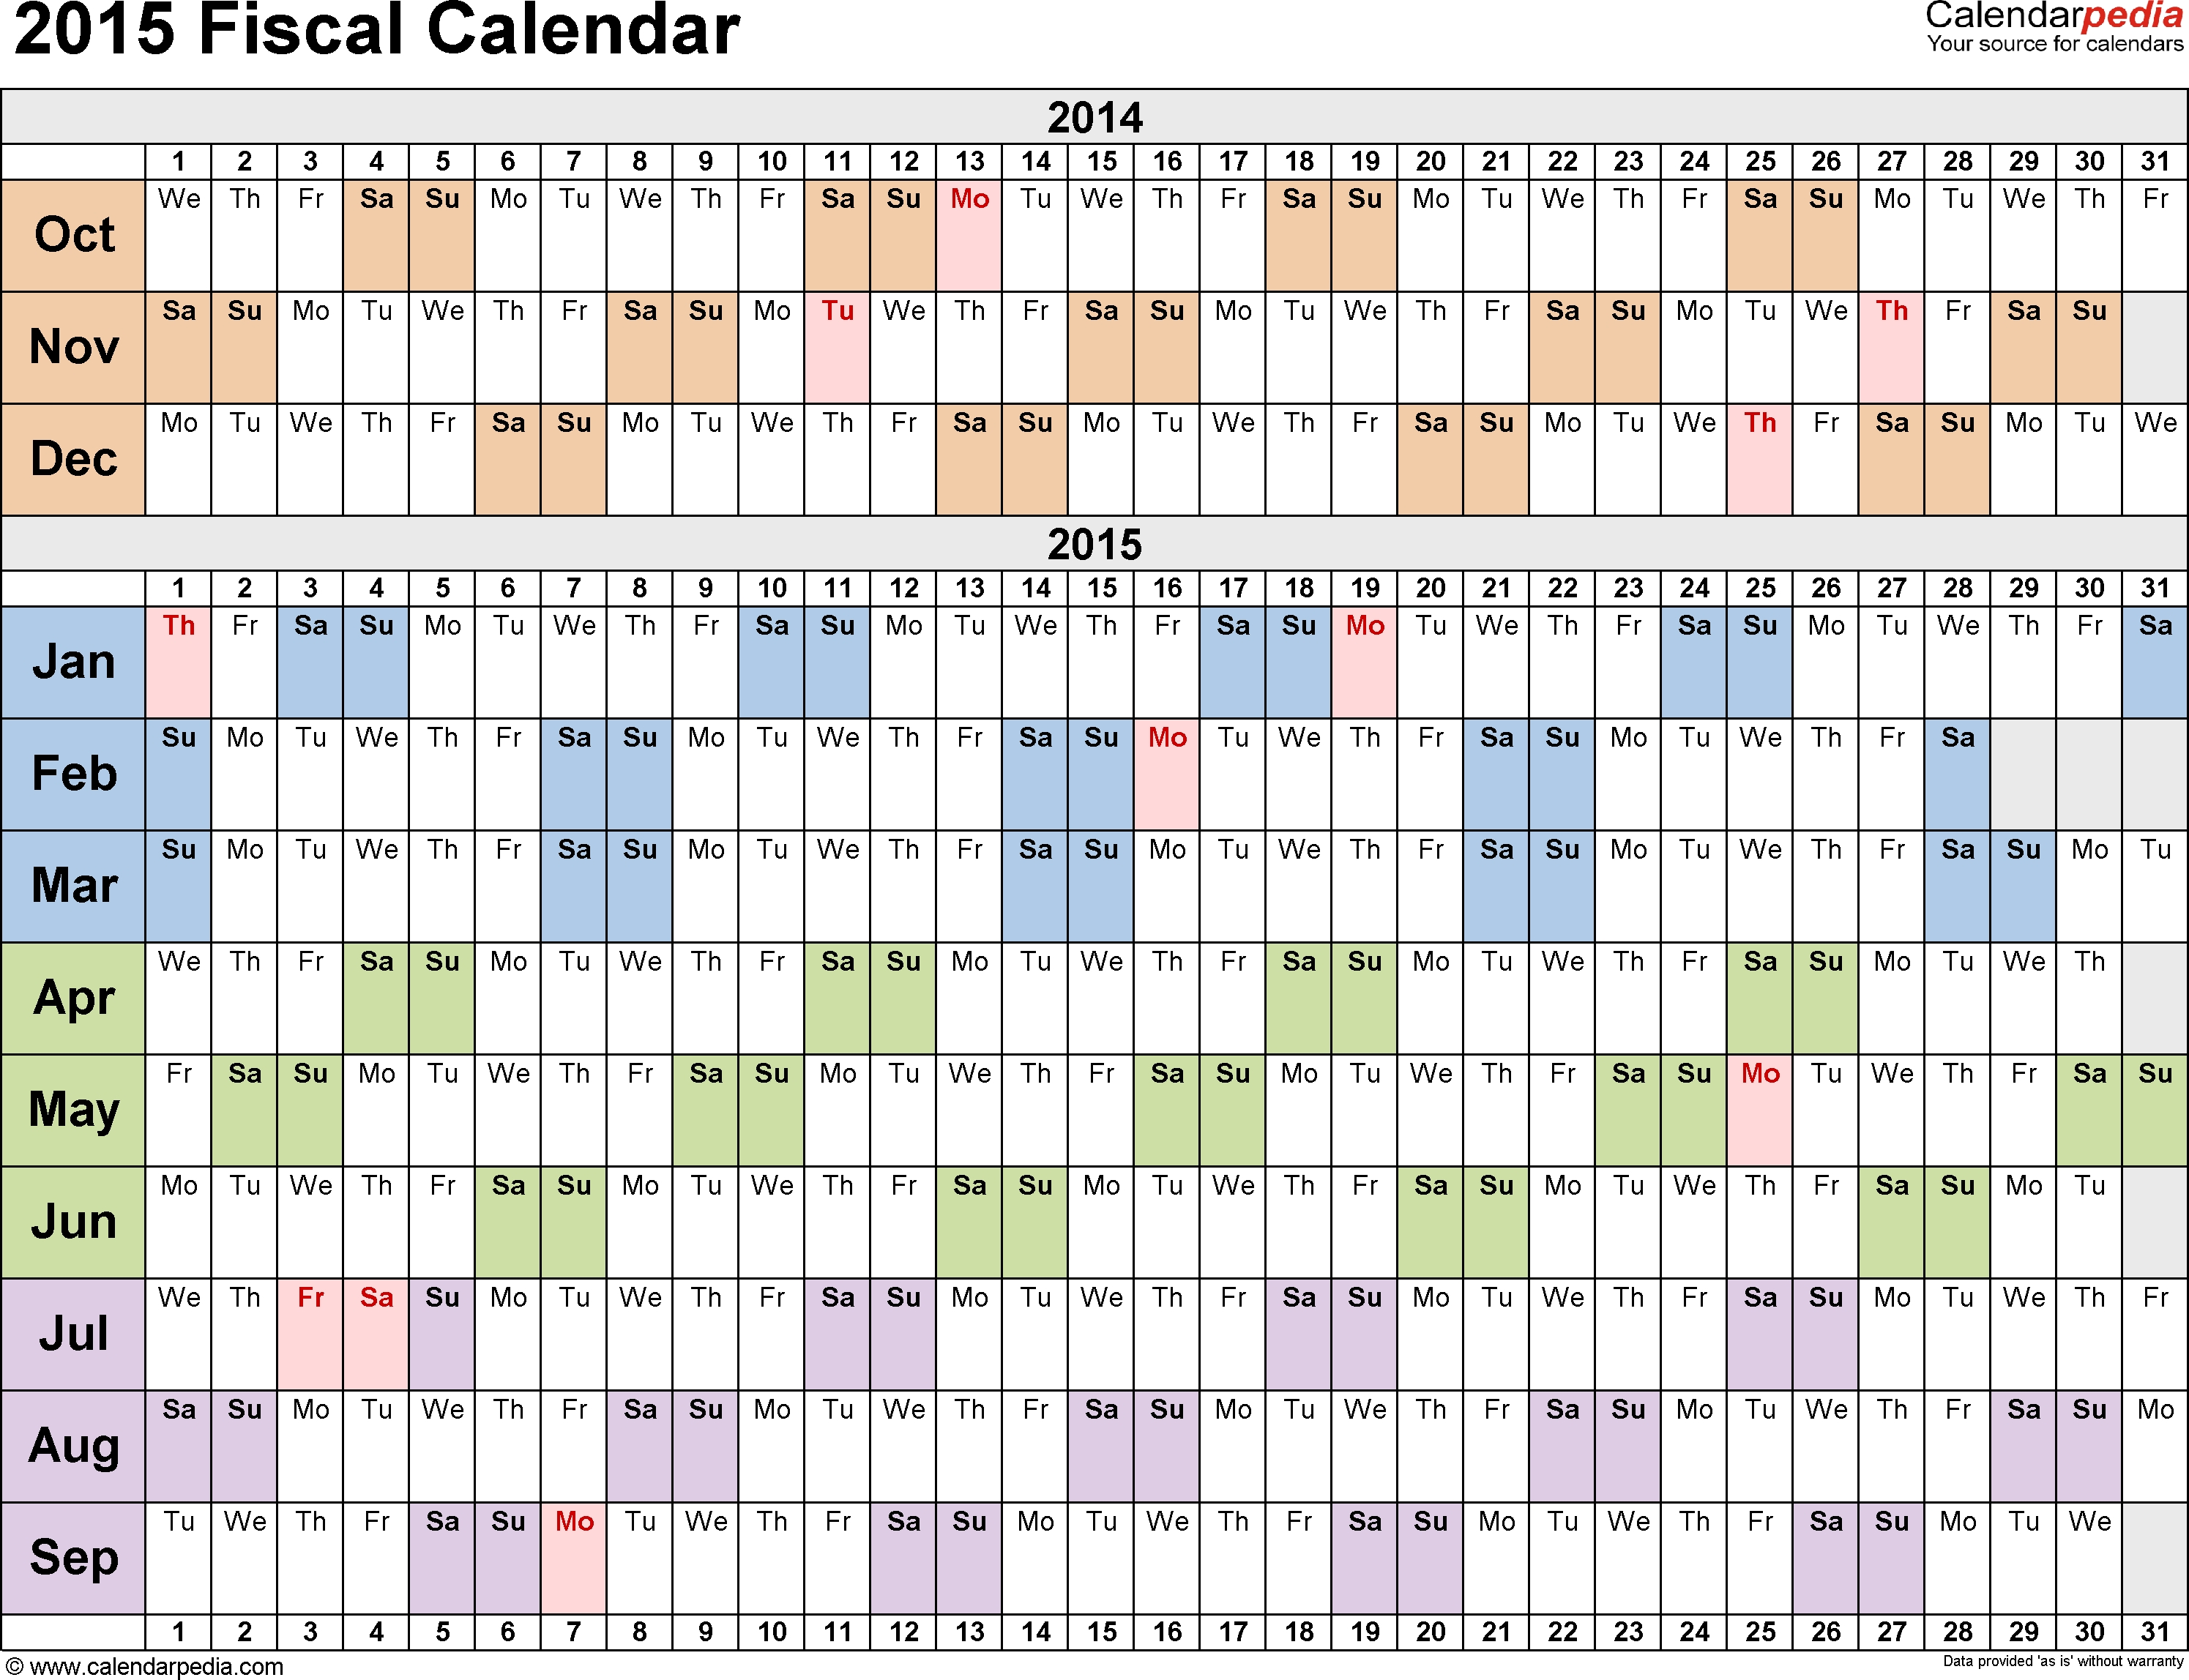 Fiscal Calendars 2015 As Free Printable Pdf Templates for Fiscal Year Vs Calendar Year